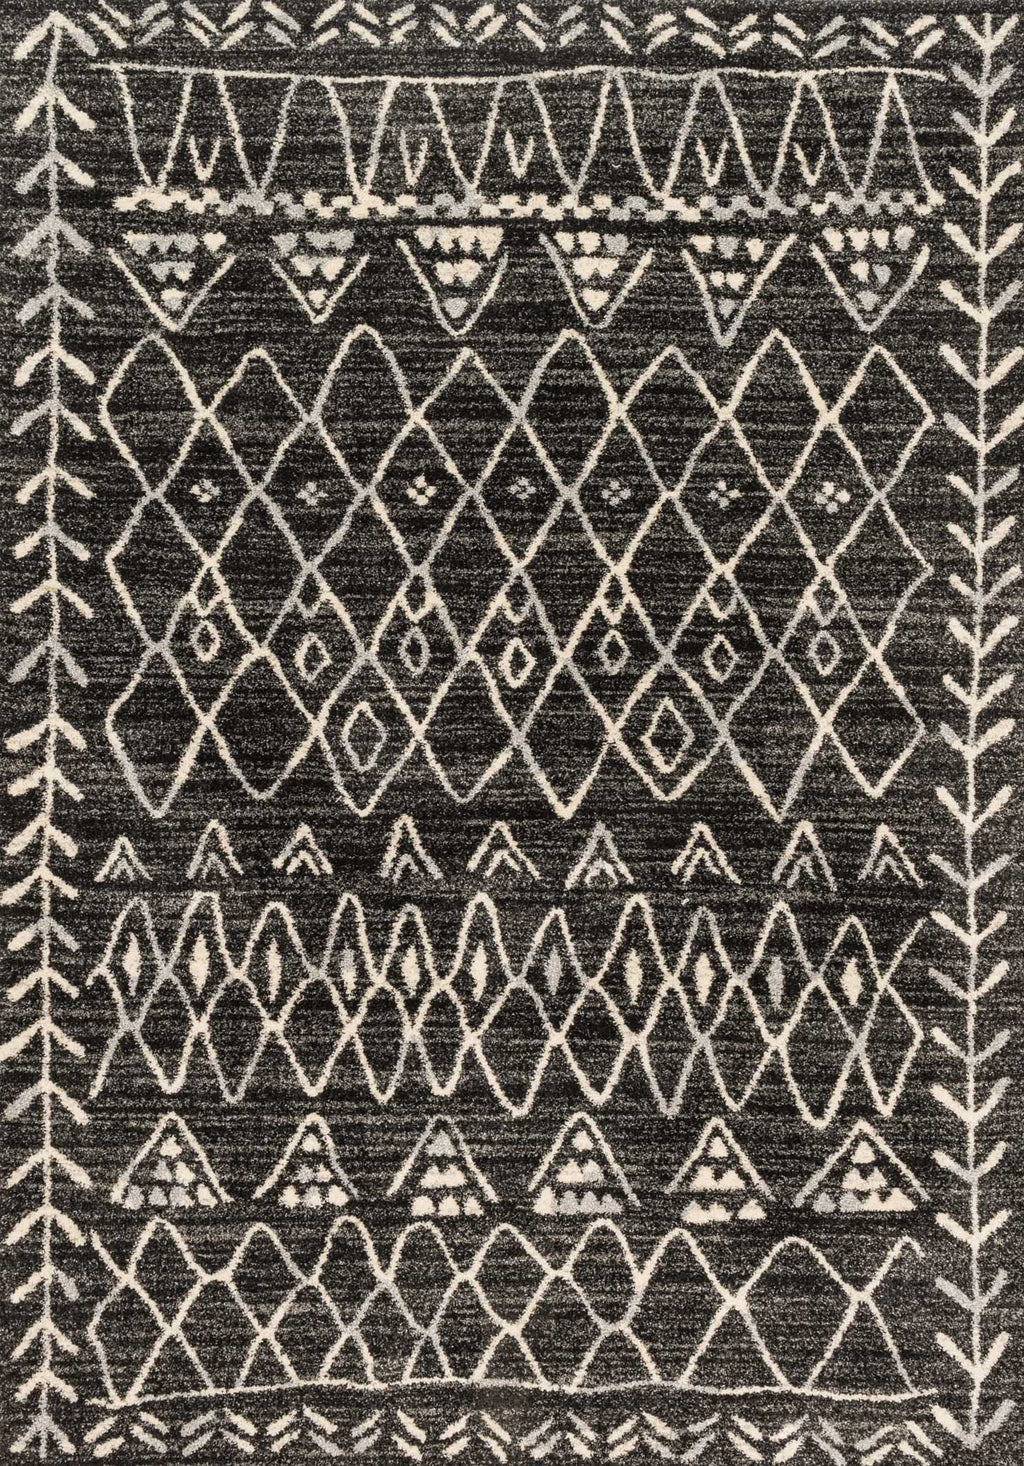 EMORY Collection Rug  in  BLACK / IVORY Black Runner Power-Loomed Polypropylene